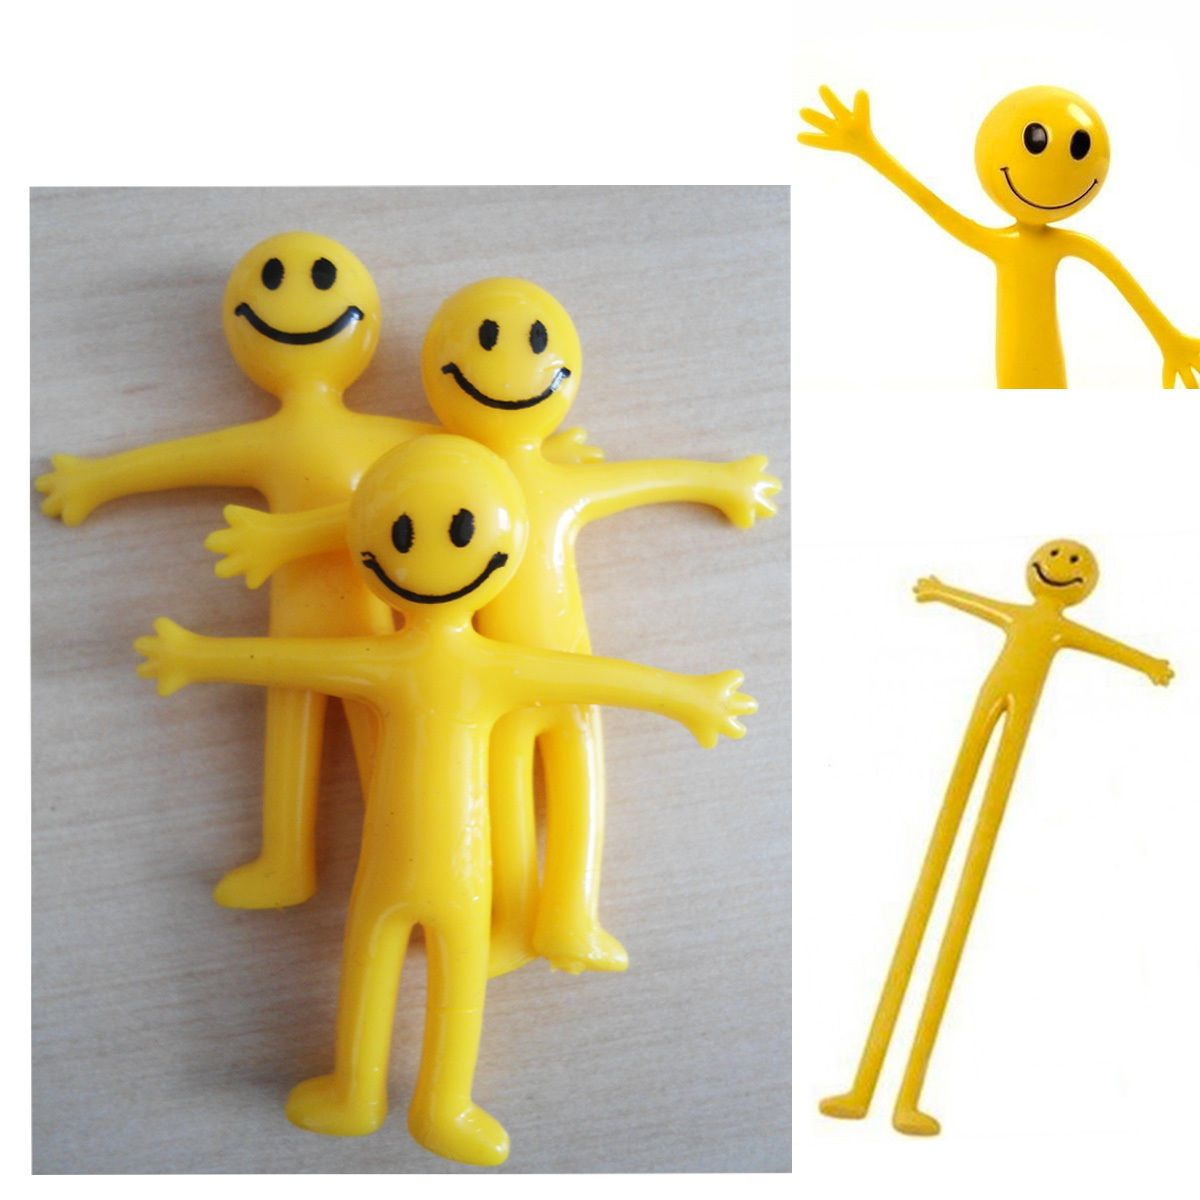 Stretchy Smiley Men Kids Party Fun Loot Bag Filler Mini Stretch Toy Yellow Gift